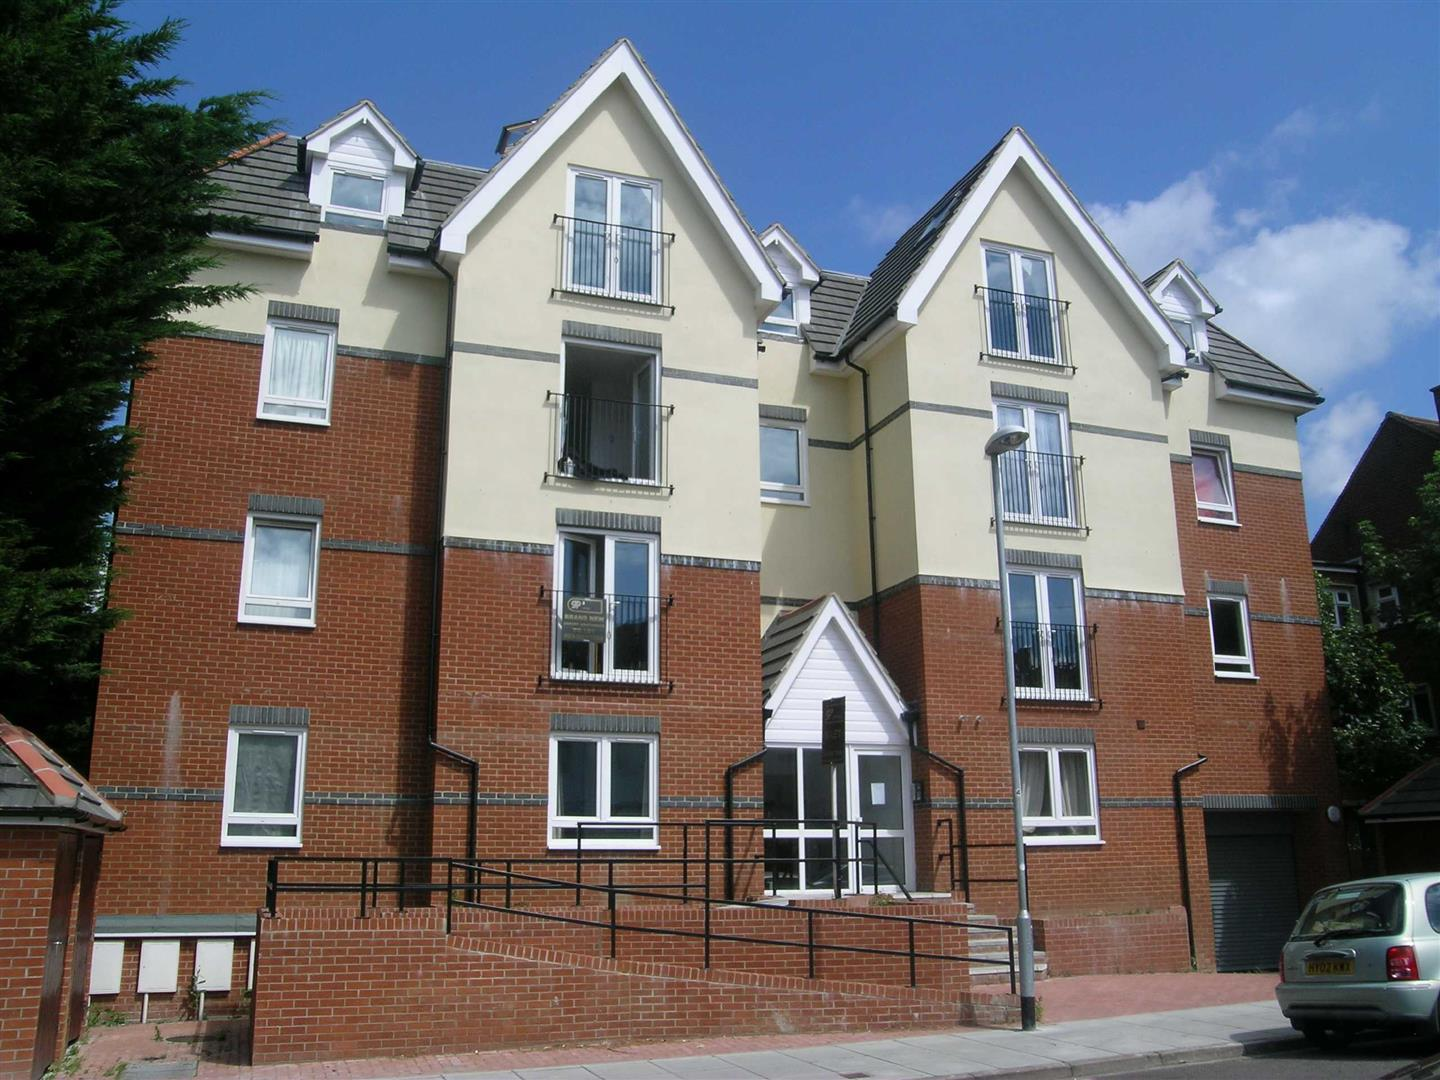 2 Bedrooms Flat for sale in St Simons Road, SOUTHSEA, Portsmouth, Hampshire